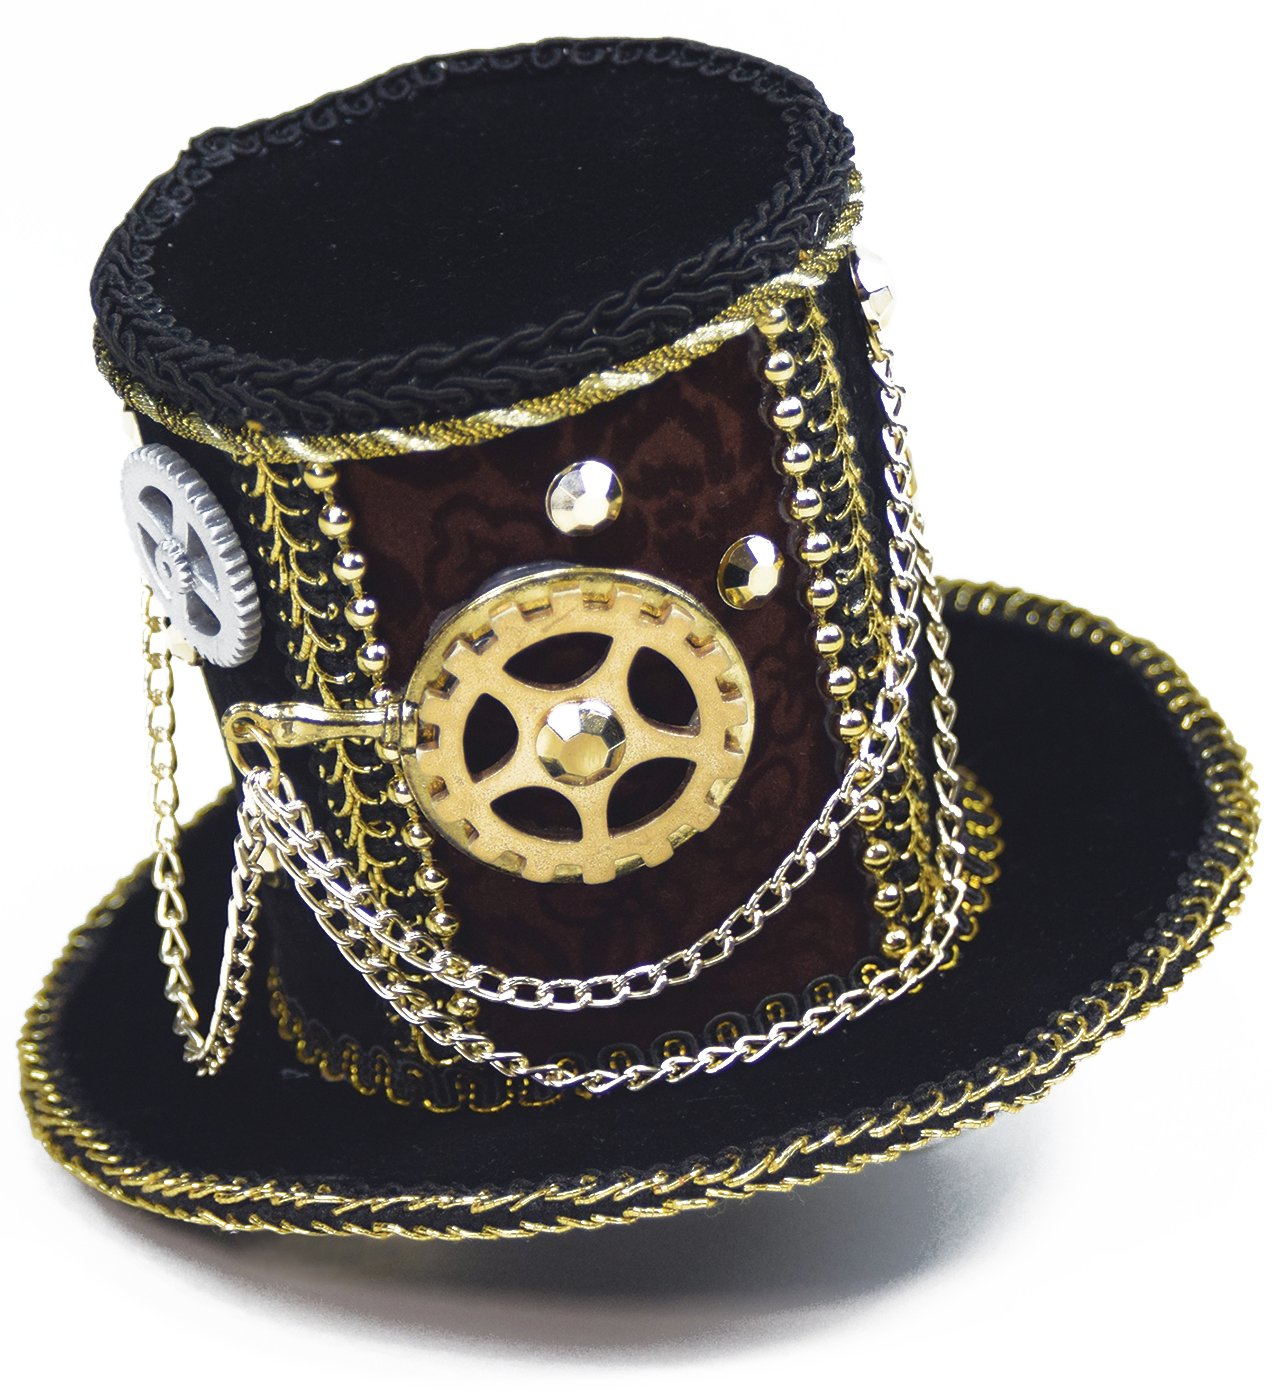 Top 10 wholesale Steampunk Top Hat - Chinabrands.com 698863fad9b9